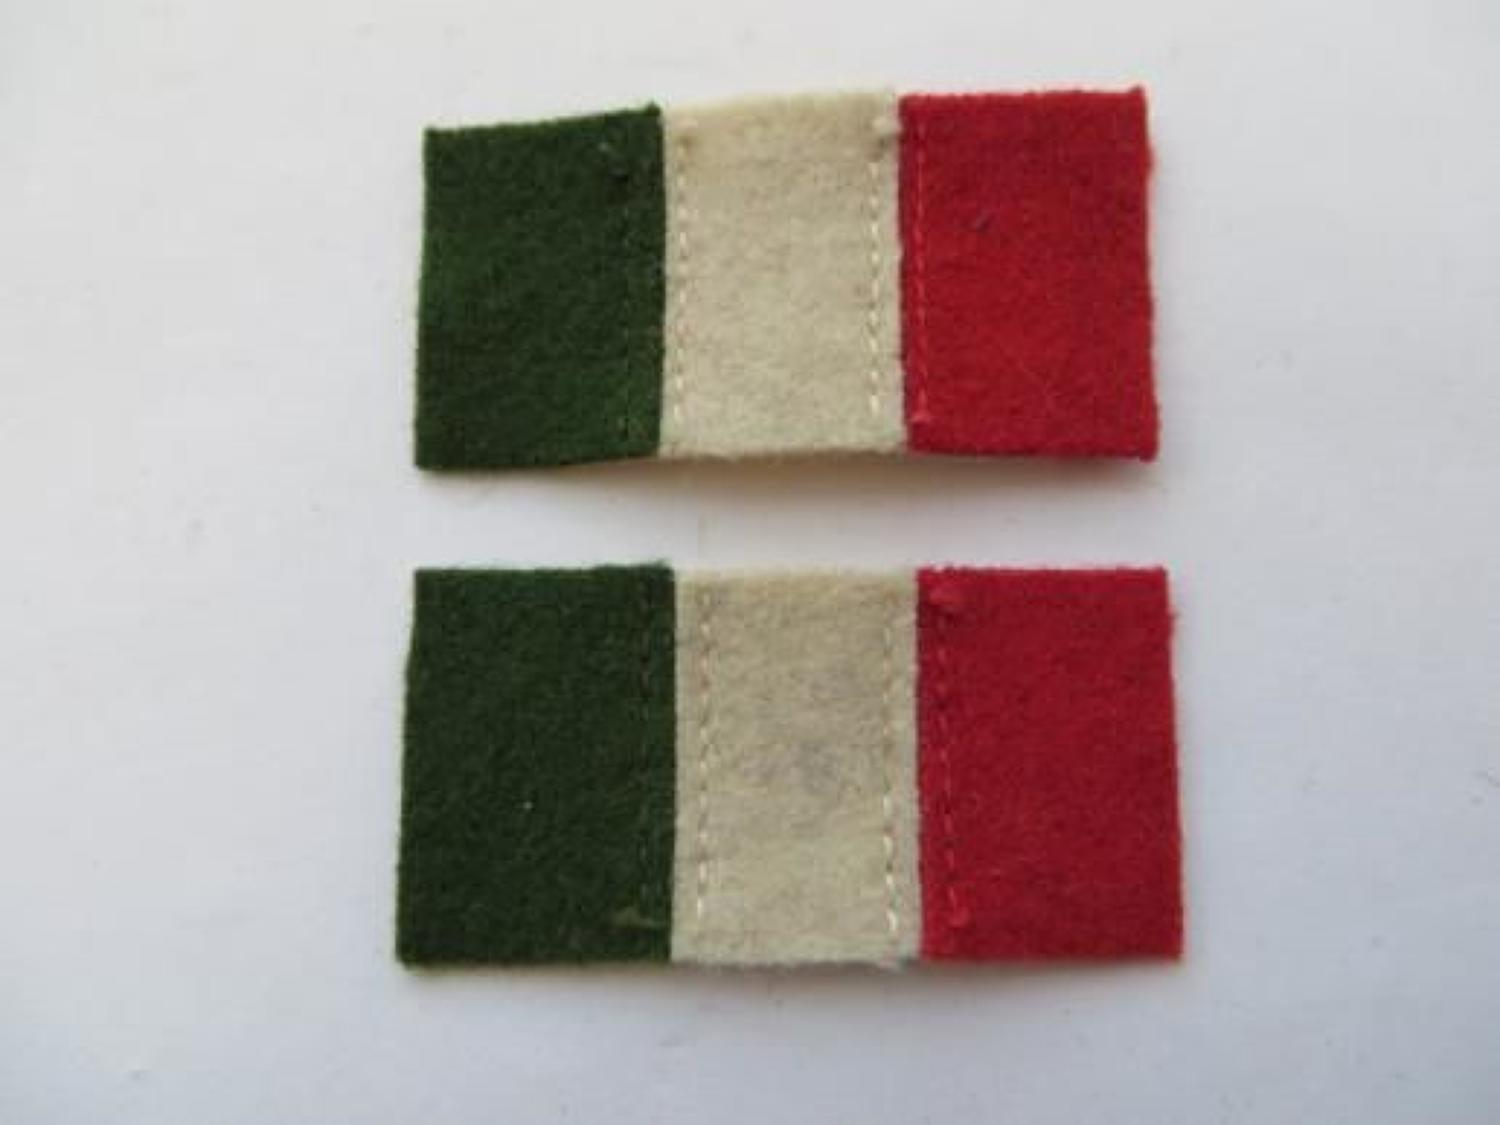 Pair of Regimental Formation Badges